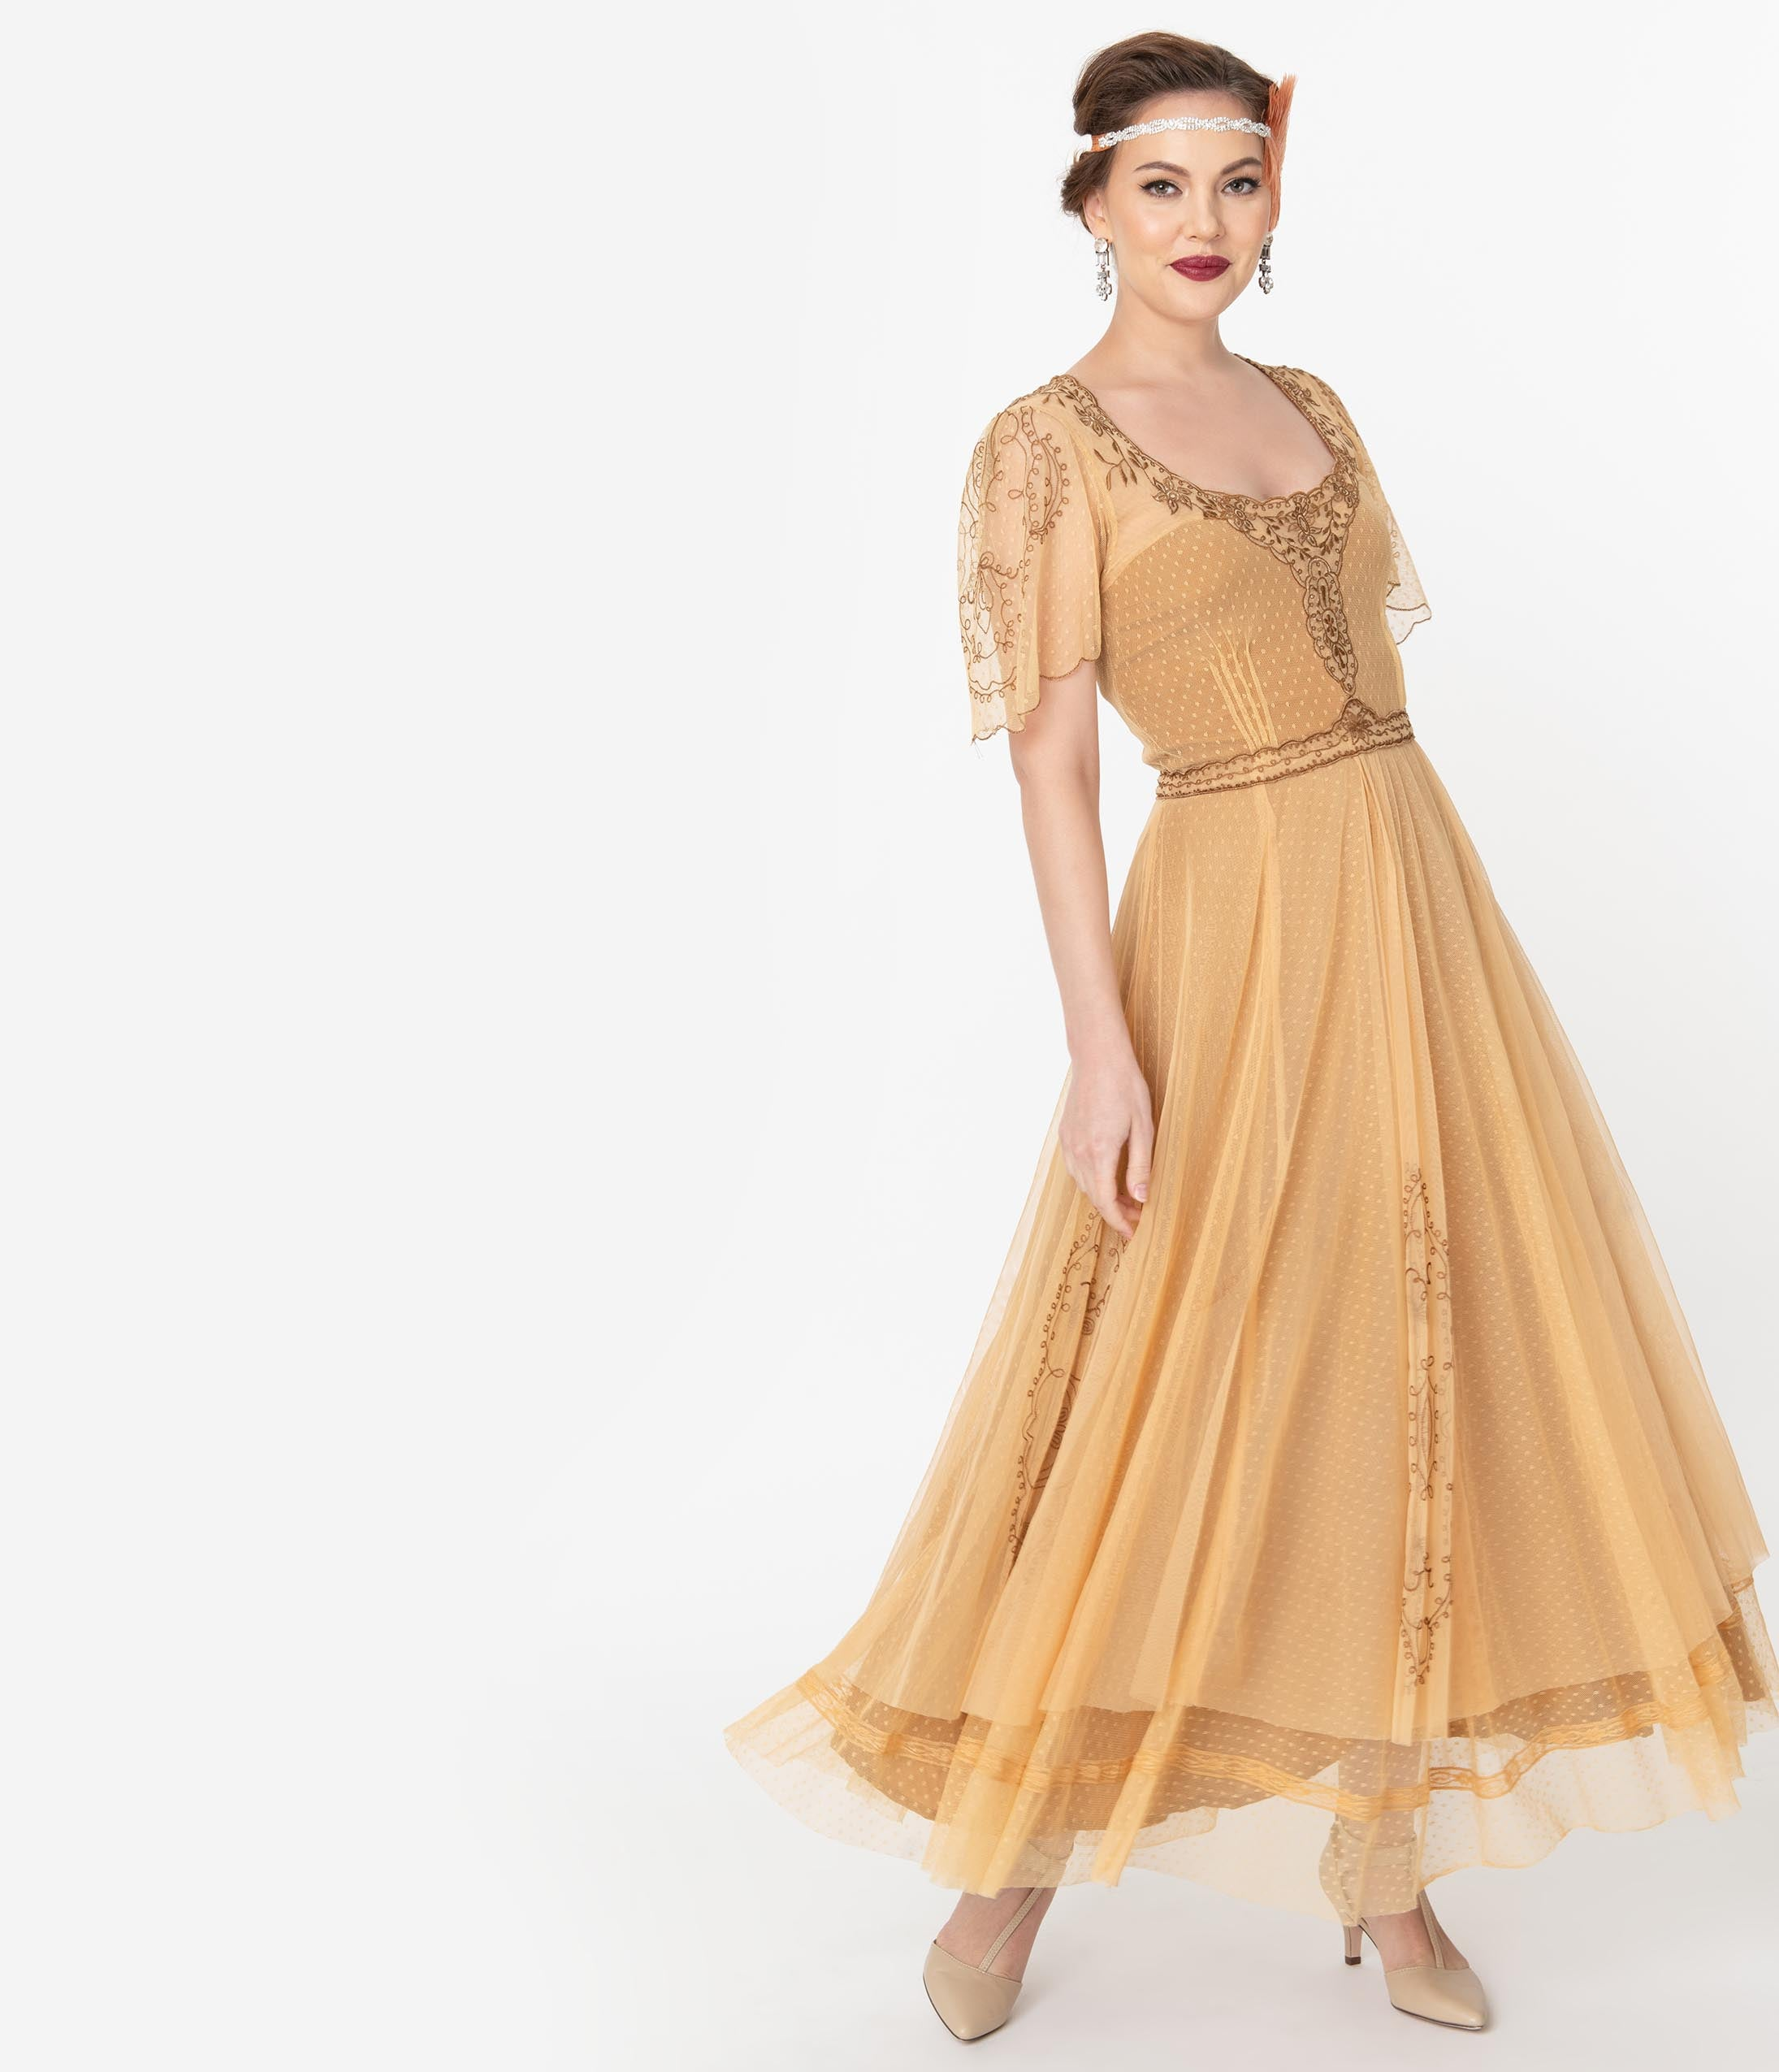 Best 1920s Prom Dresses – Great Gatsby Style Gowns Vintage Style Gold Embroidered Mesh Edwardian Gown $299.00 AT vintagedancer.com